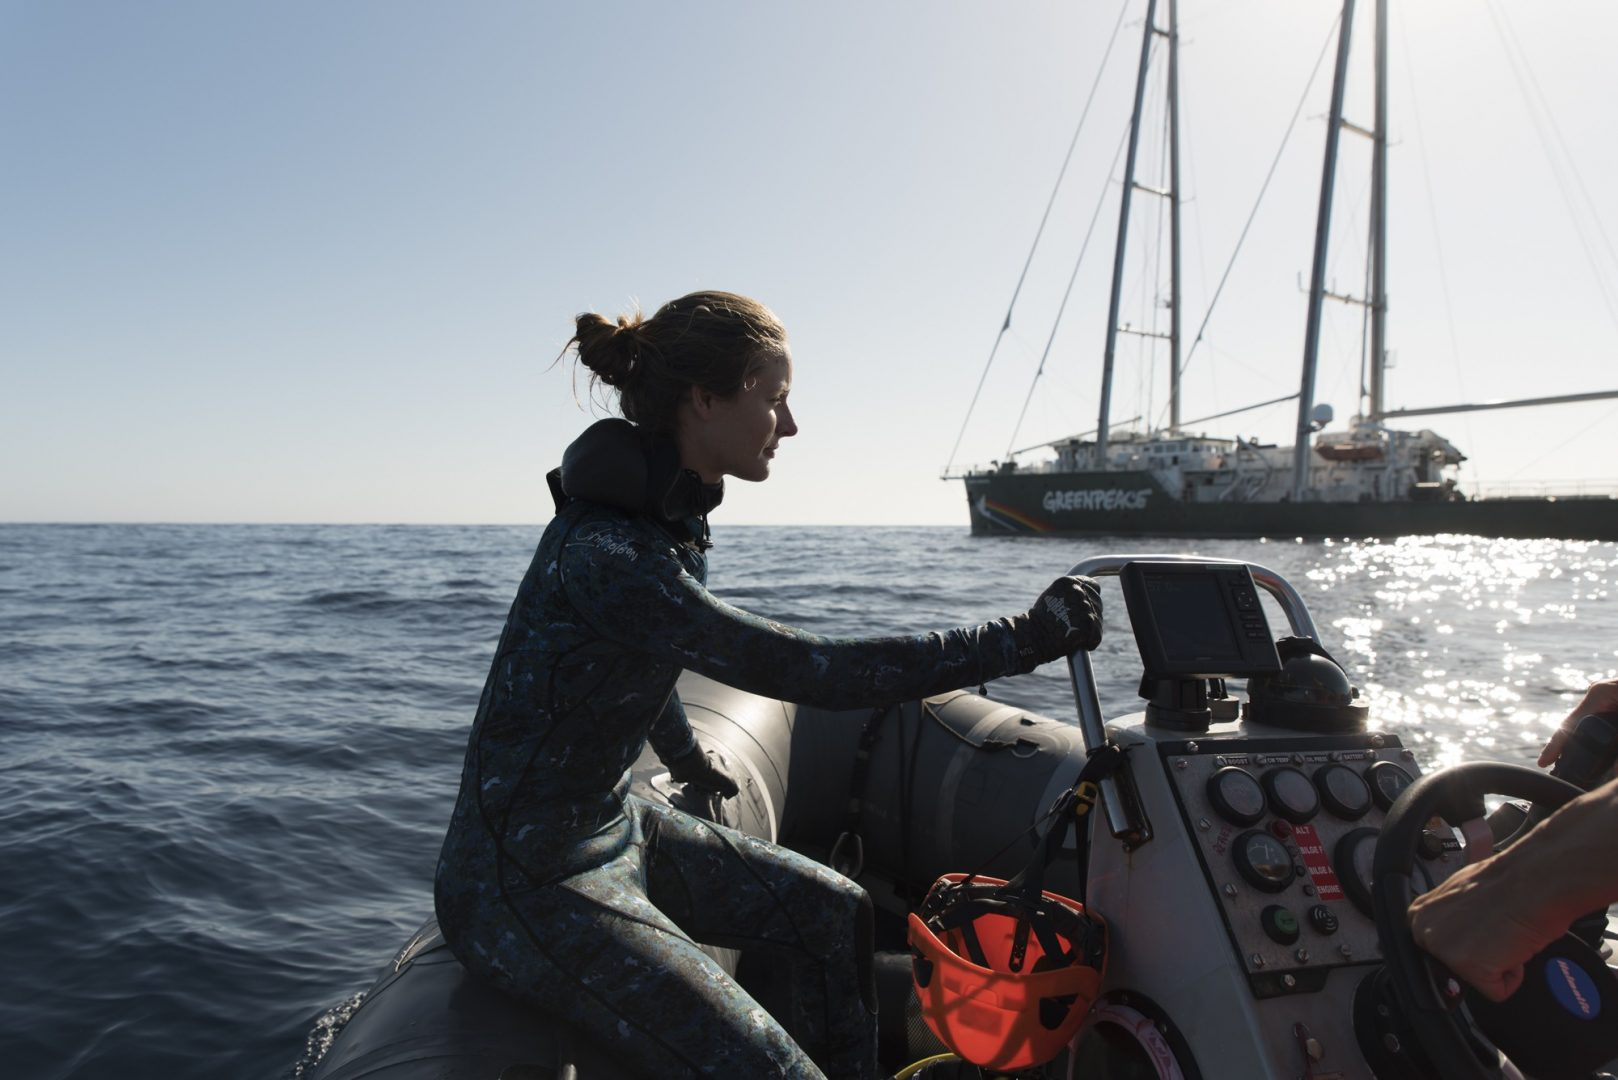 Underwater photographer Mikaela Skovranoa heading back to the Rainbow Warrior III after a dive in the Great Australian Bight